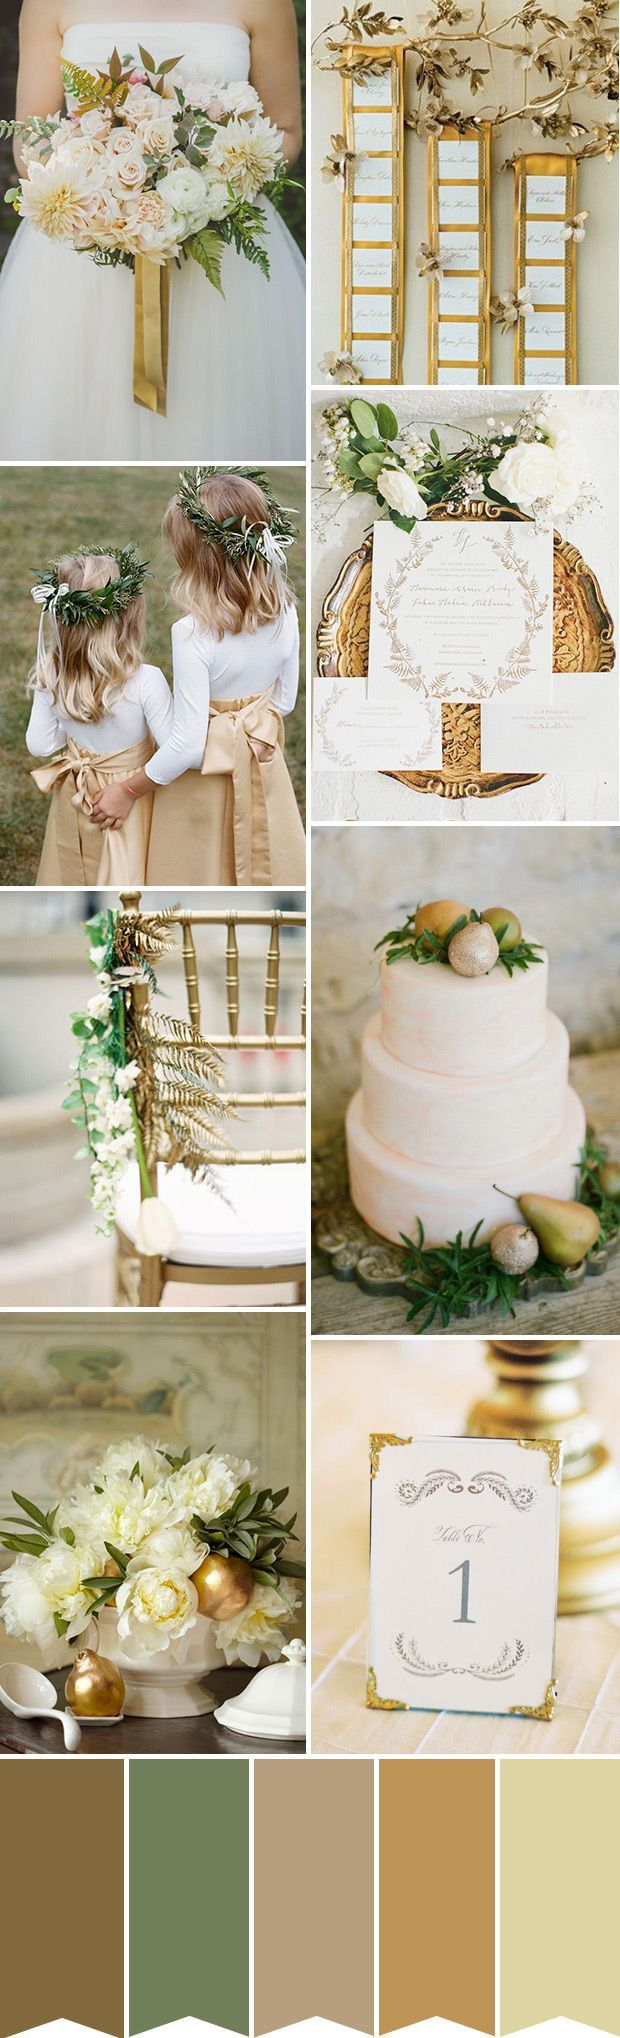 Popular Rustic Wedding Themes 2015 with DIY Decoration Ideas | 21st - Bridal World - Wedding Ideas and Trends